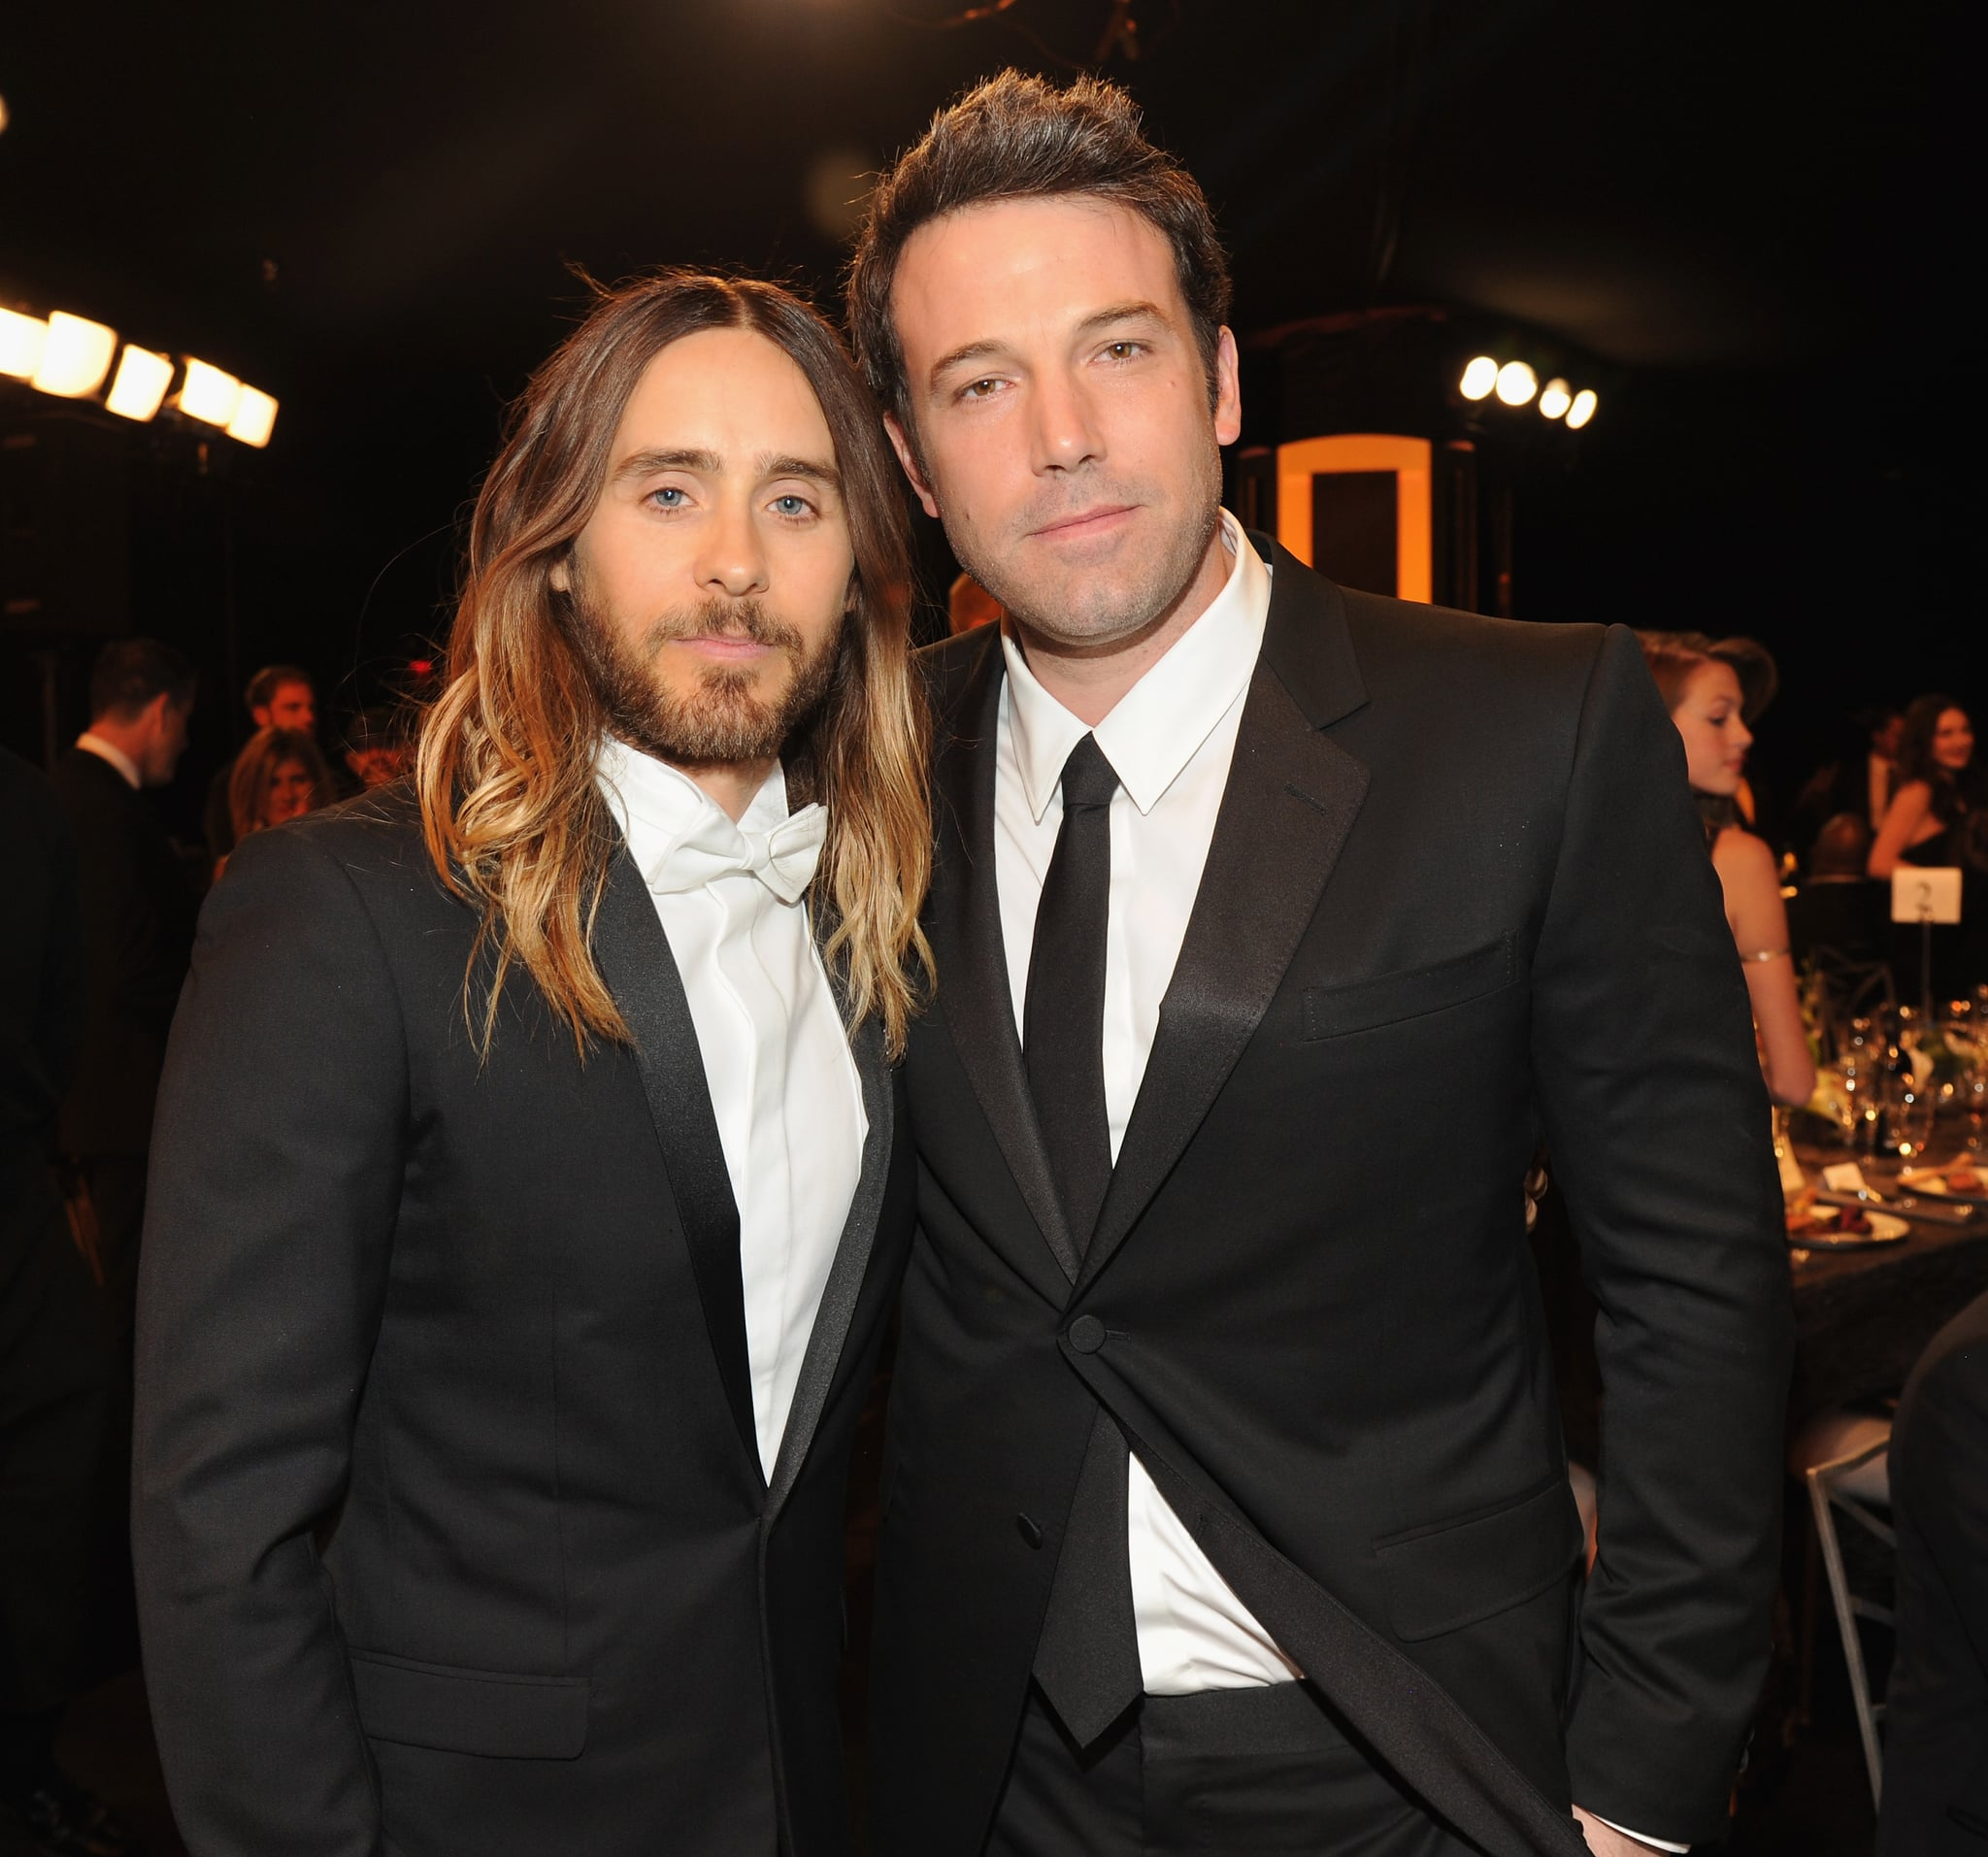 Jared and Ben posed for a photo together.